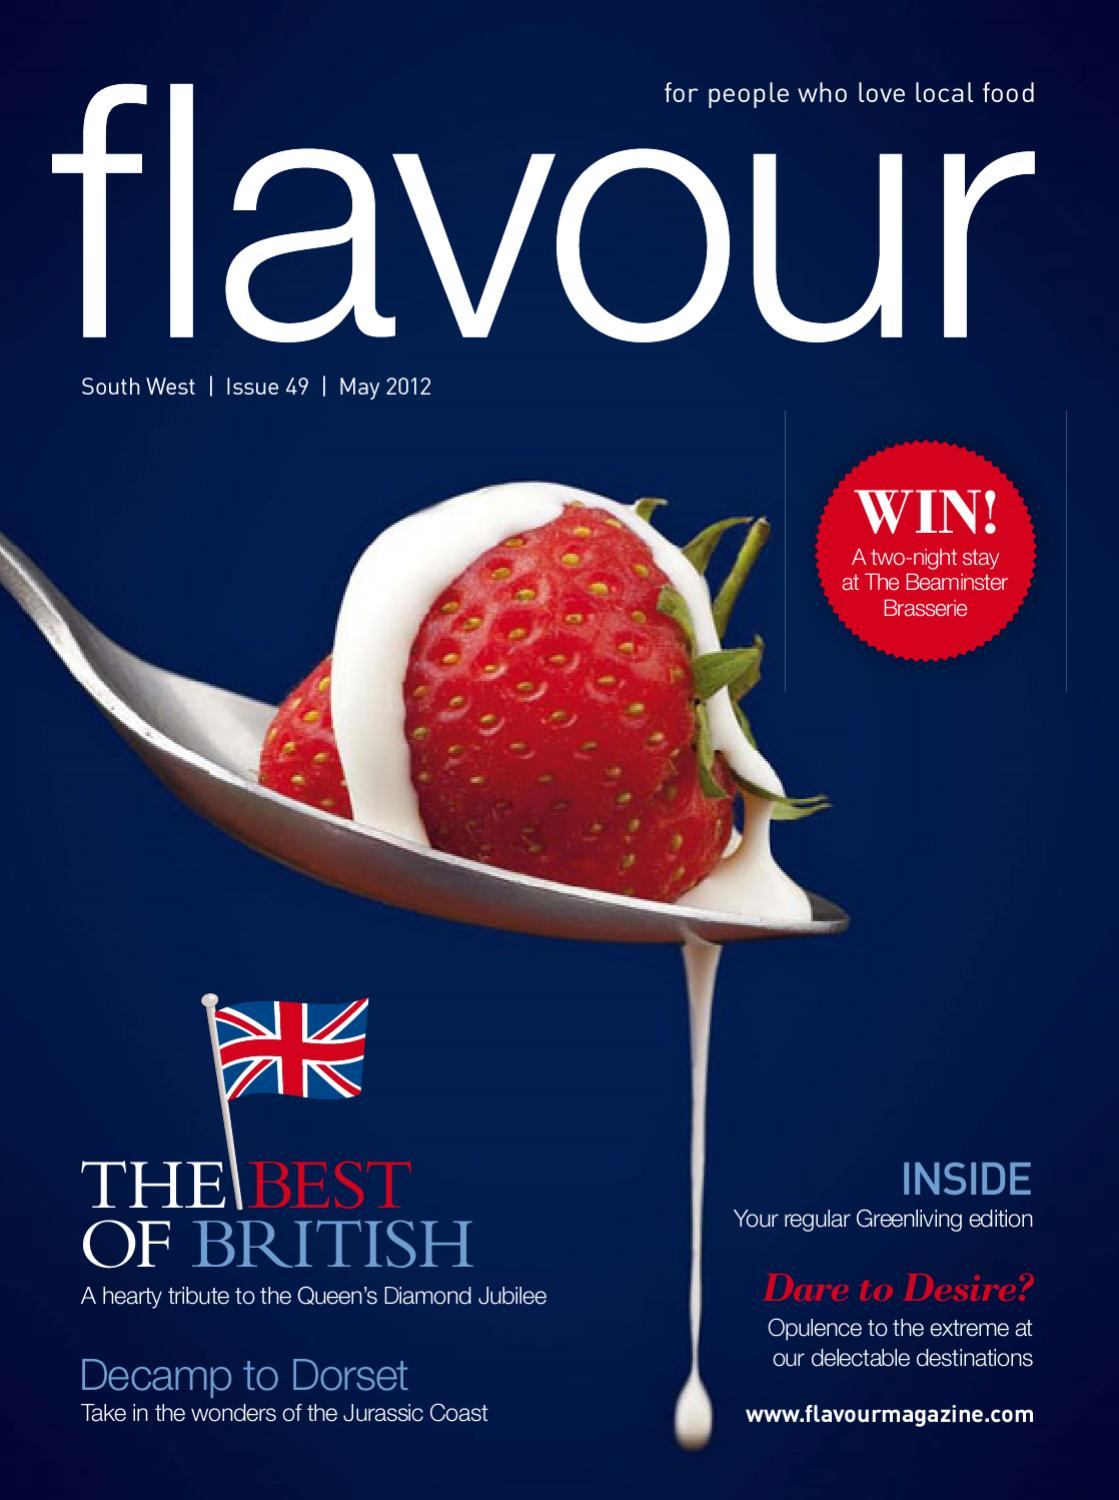 Flavour South West May 2012 49 By Magazine Issuu Peachy Pear Puree 100gr 6m